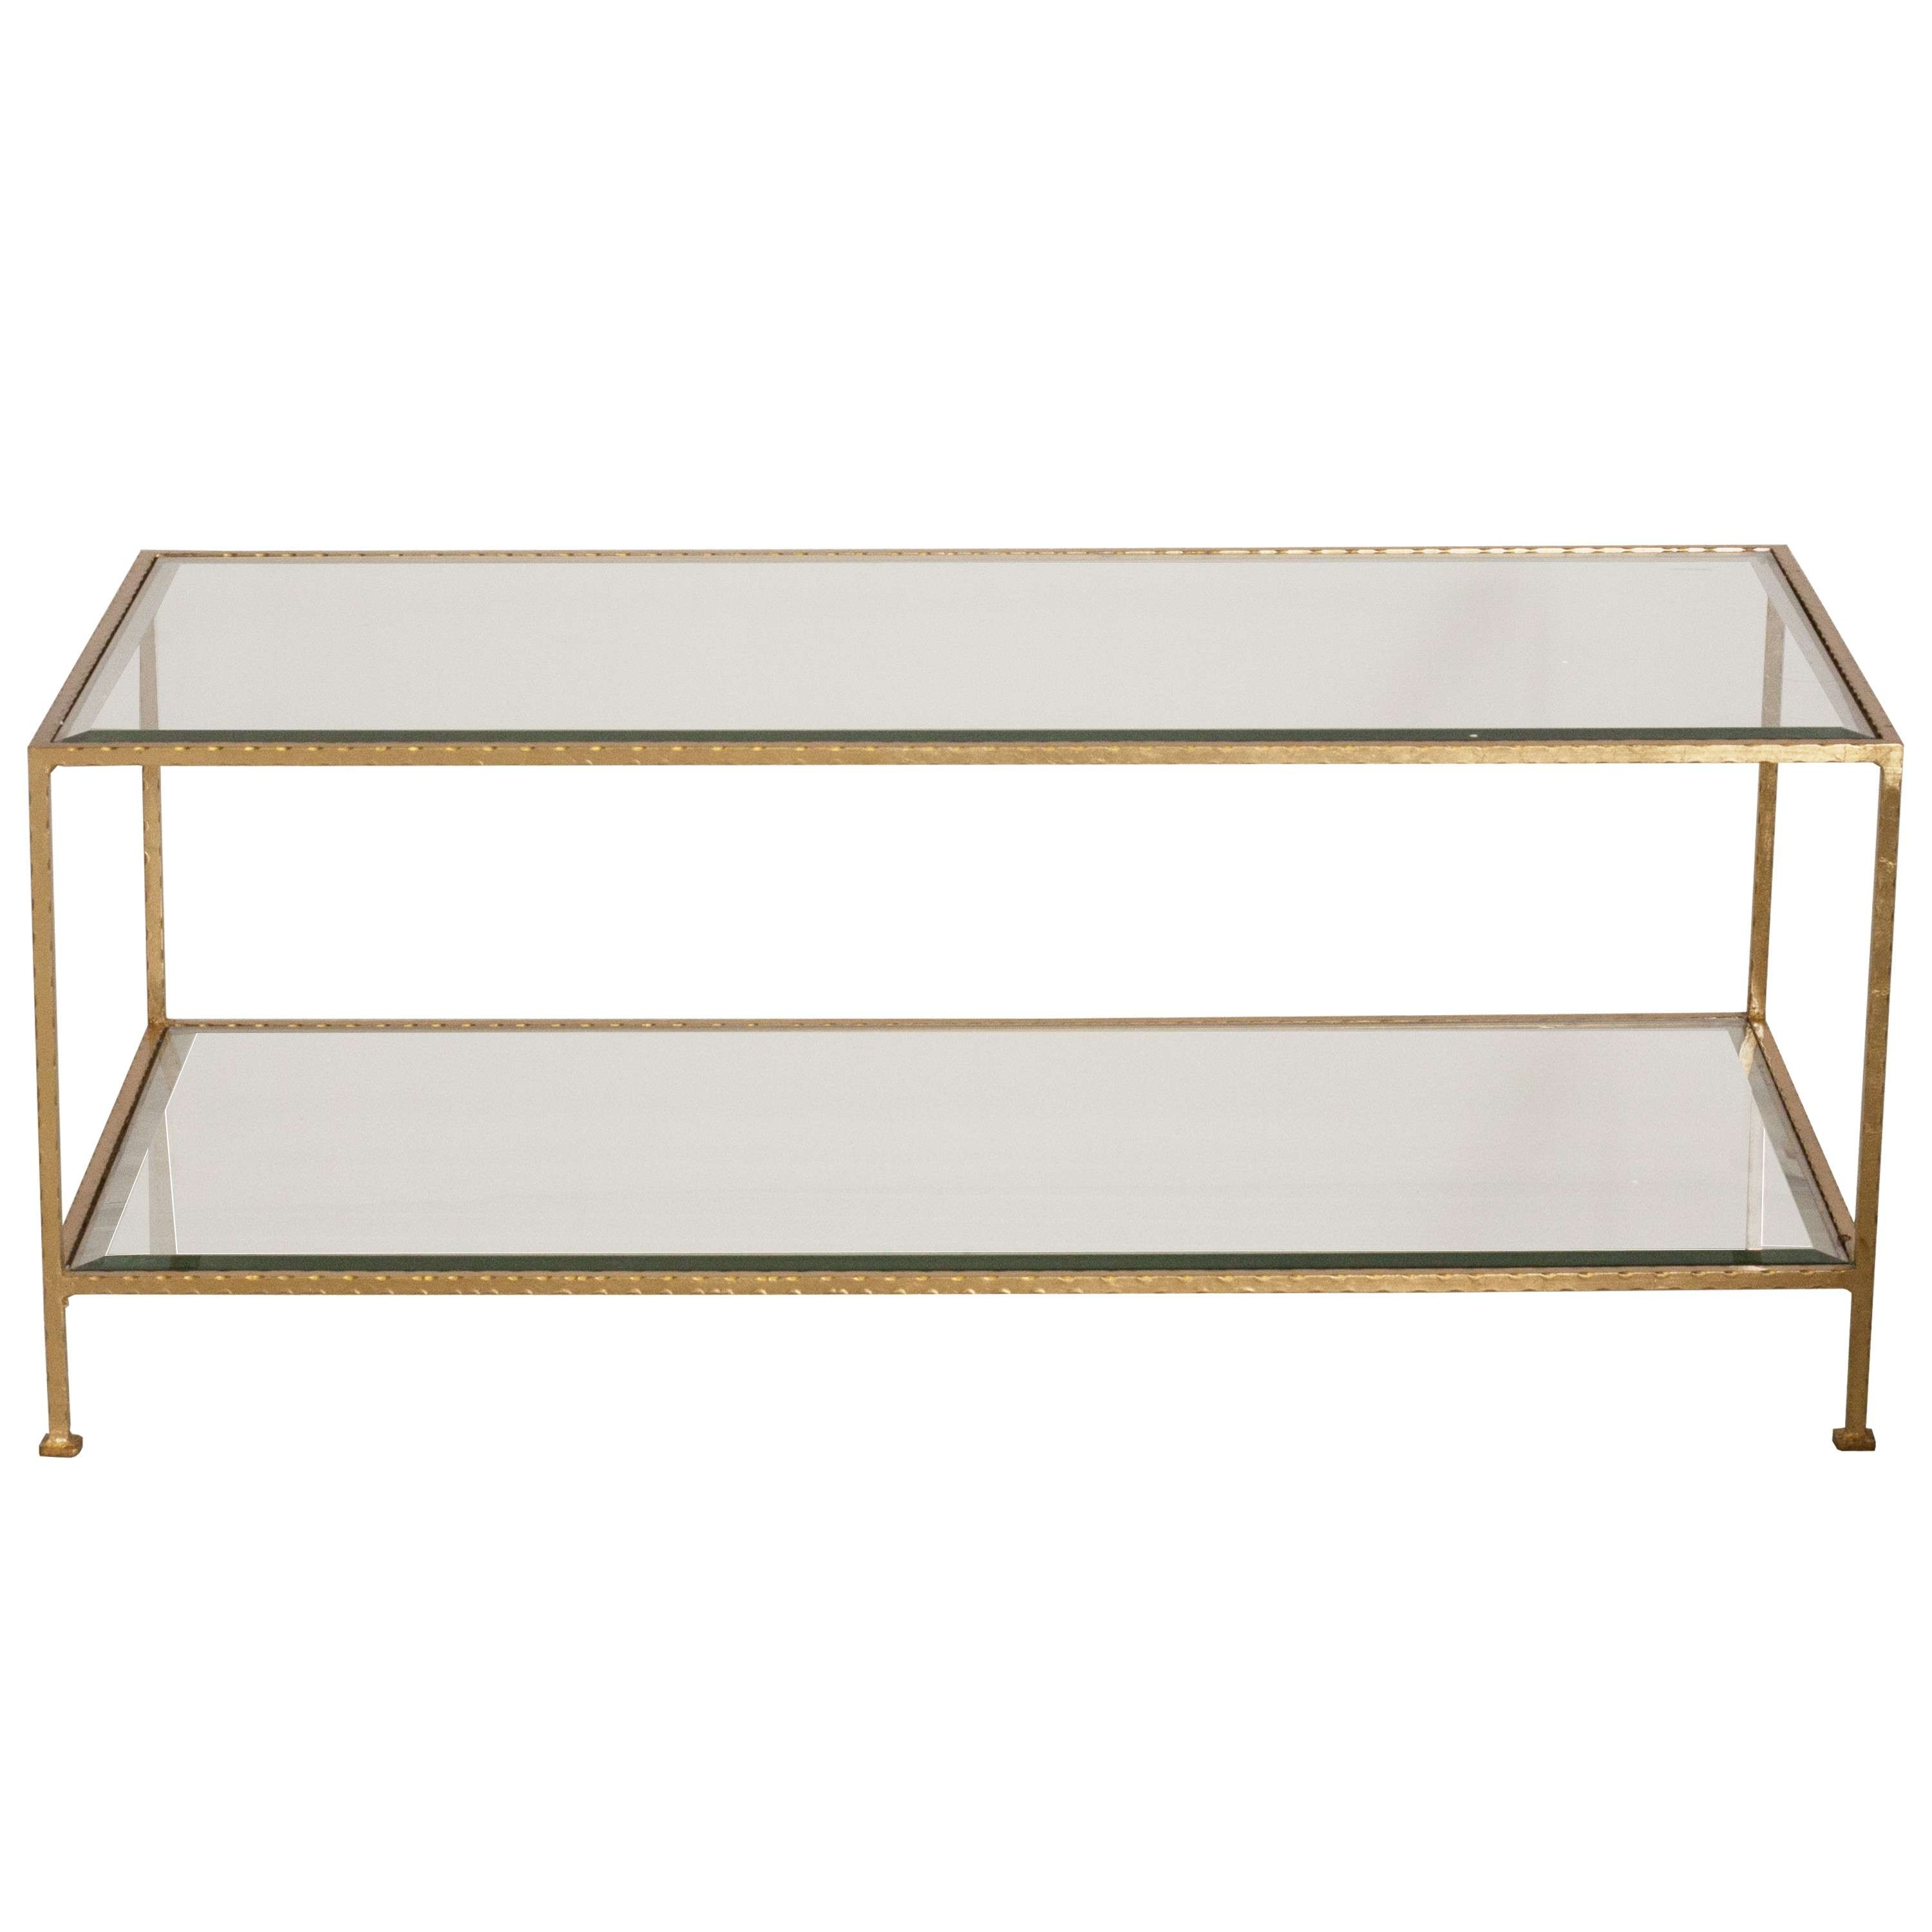 Coffee Tables : Elegant Clear And Golden Rectangle Traditional With Regard To Fashionable Coffee Tables Glass And Metal (View 3 of 20)